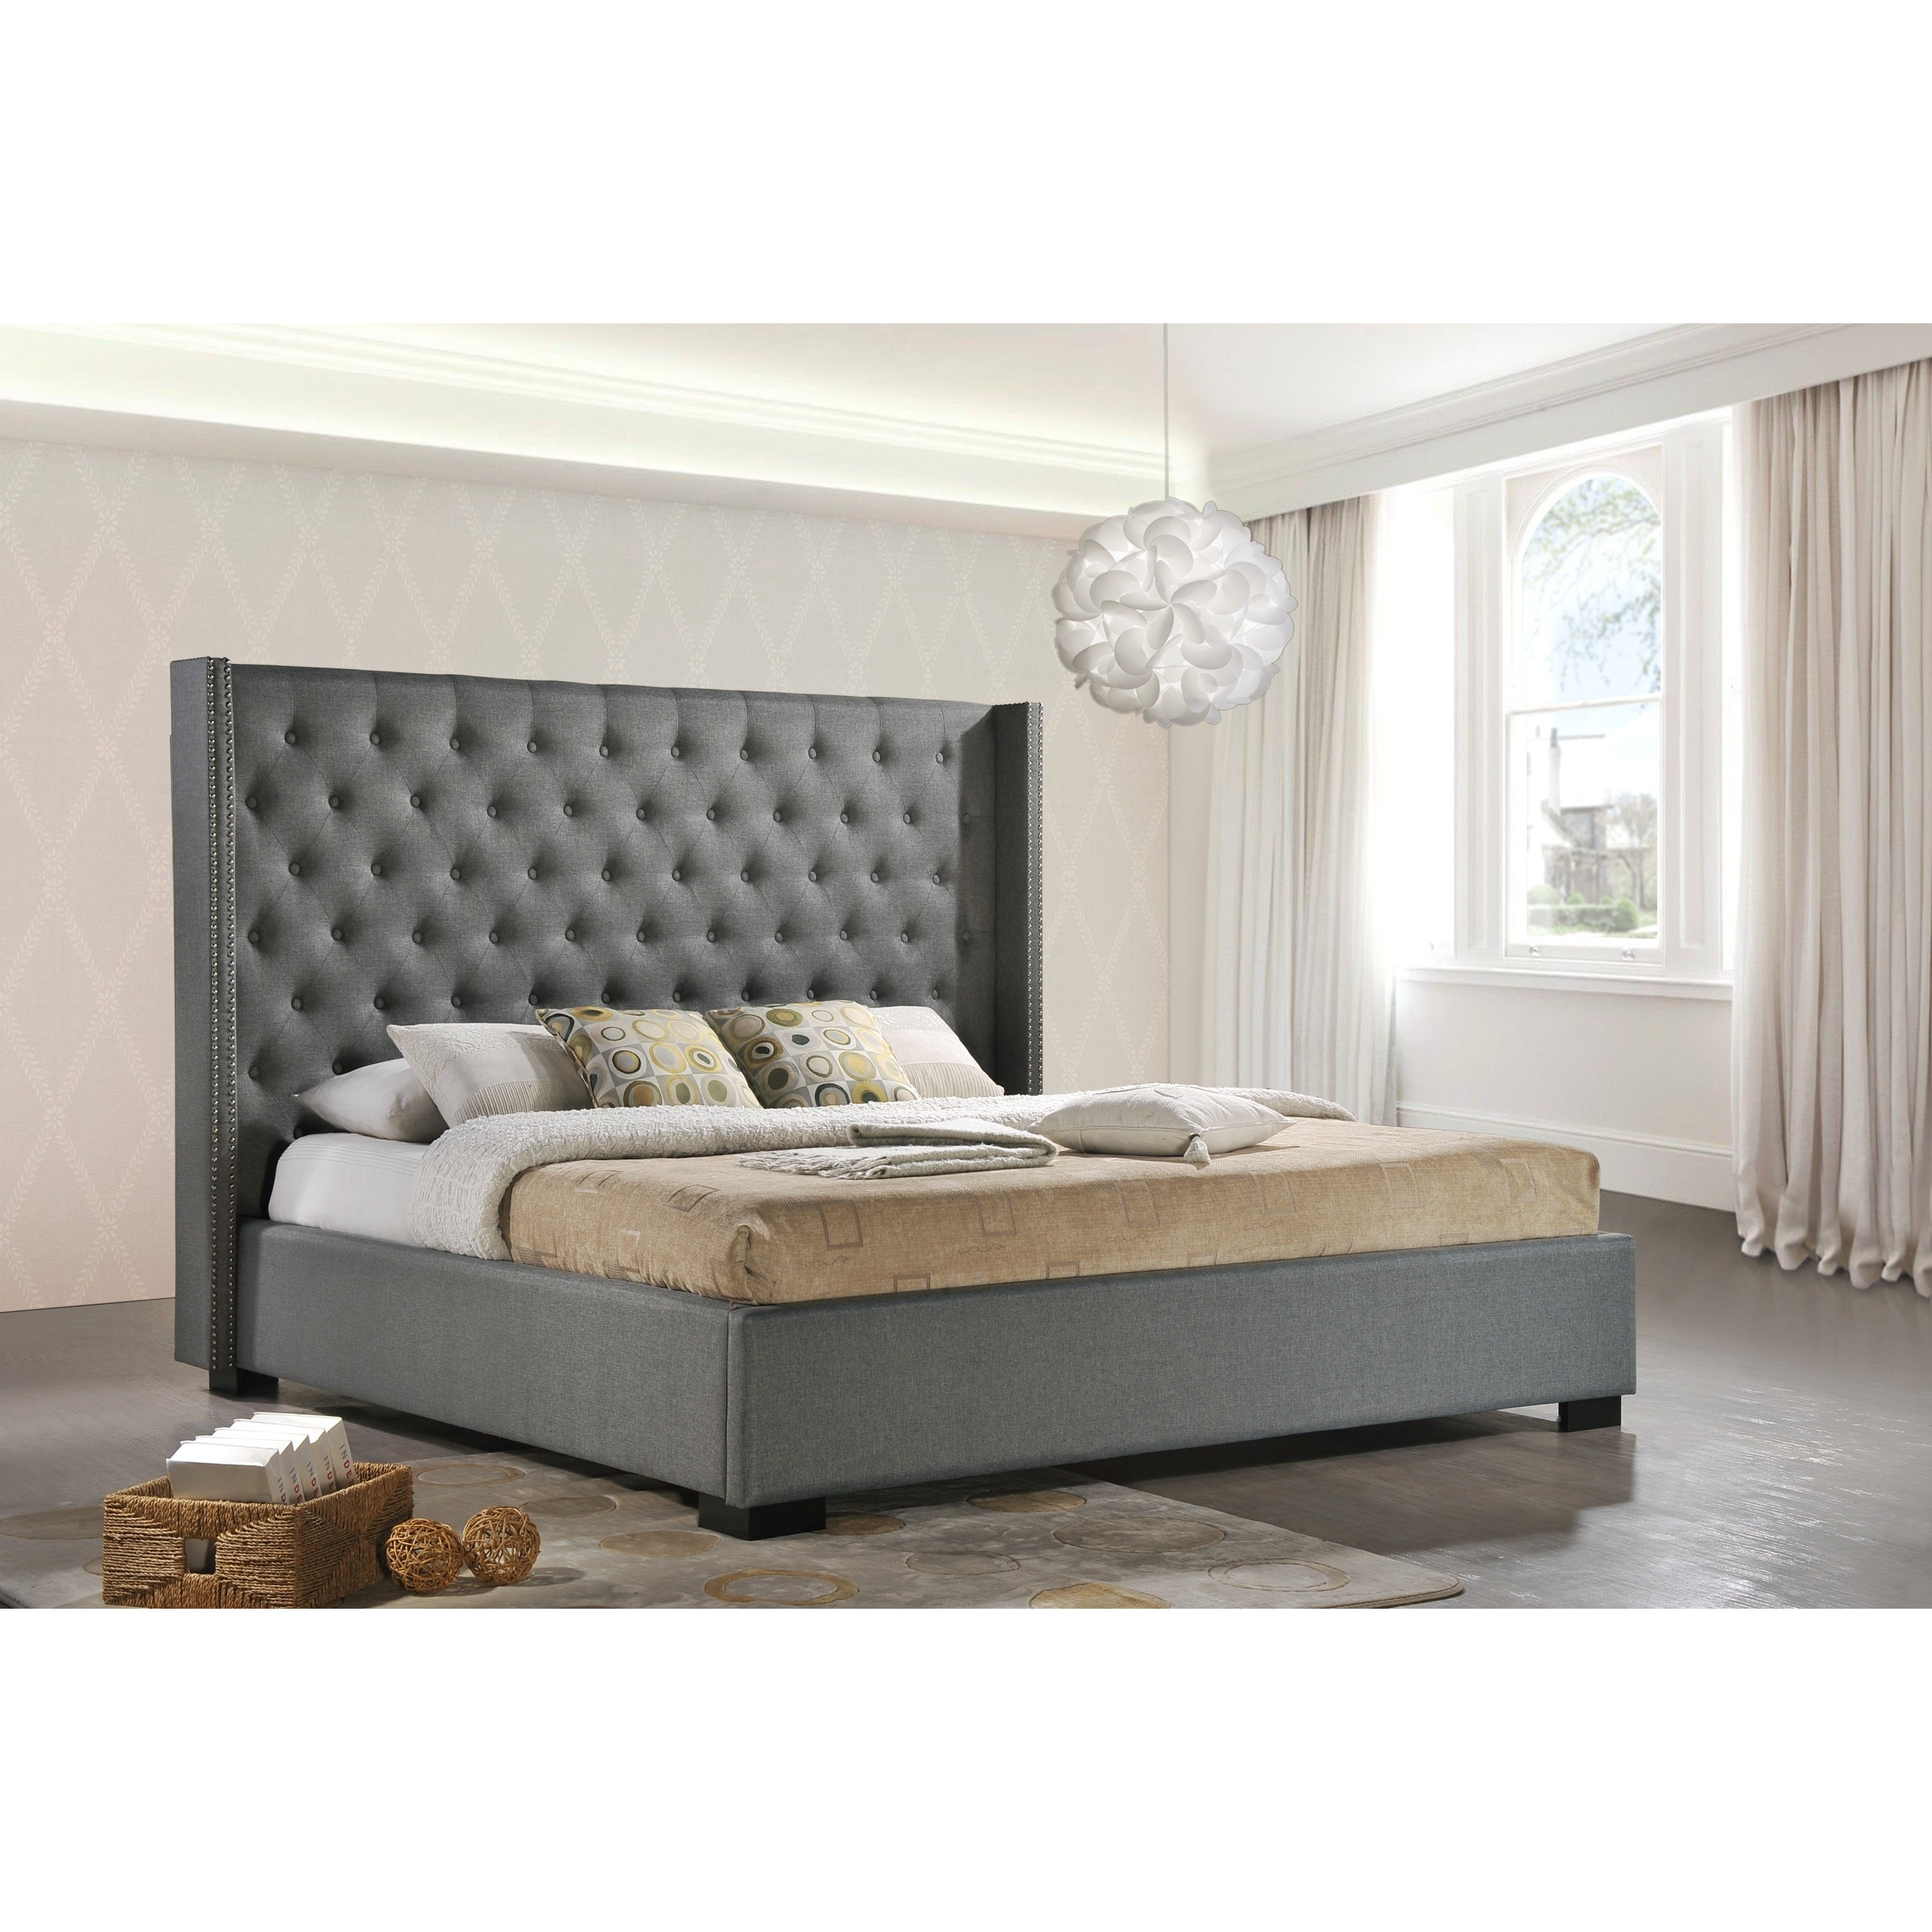 Shop luxeo newport wingback tufted contemporary upholstered king size bed in grey fabric free shipping today overstock com 9541783